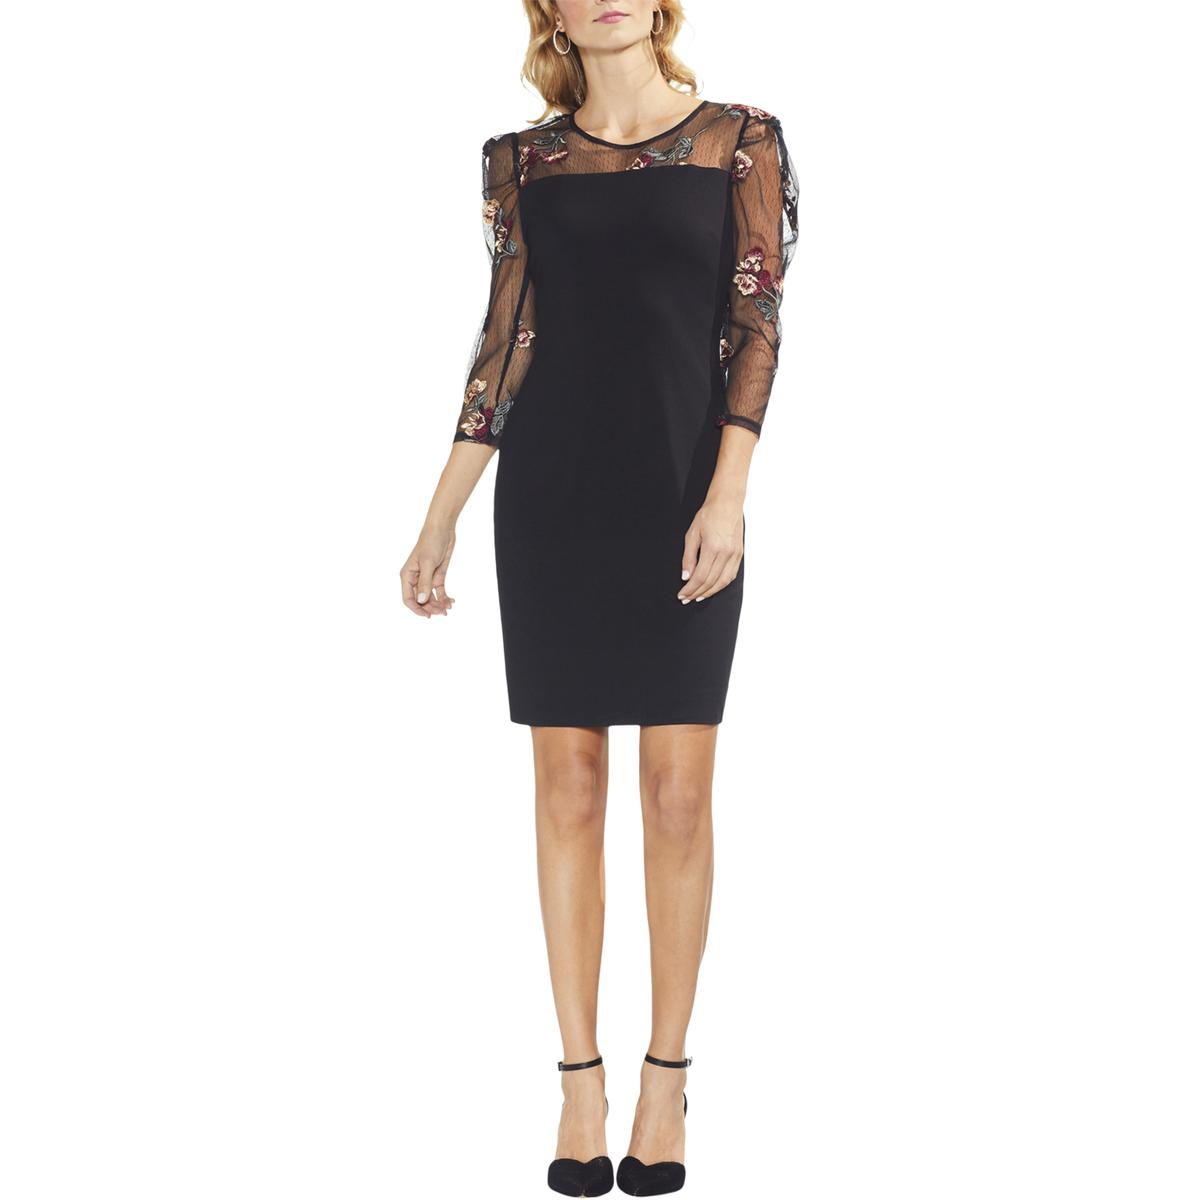 Vince Camuto Womens Floral Print Double-V Sleeveless Cocktail Dress BHFO 2731